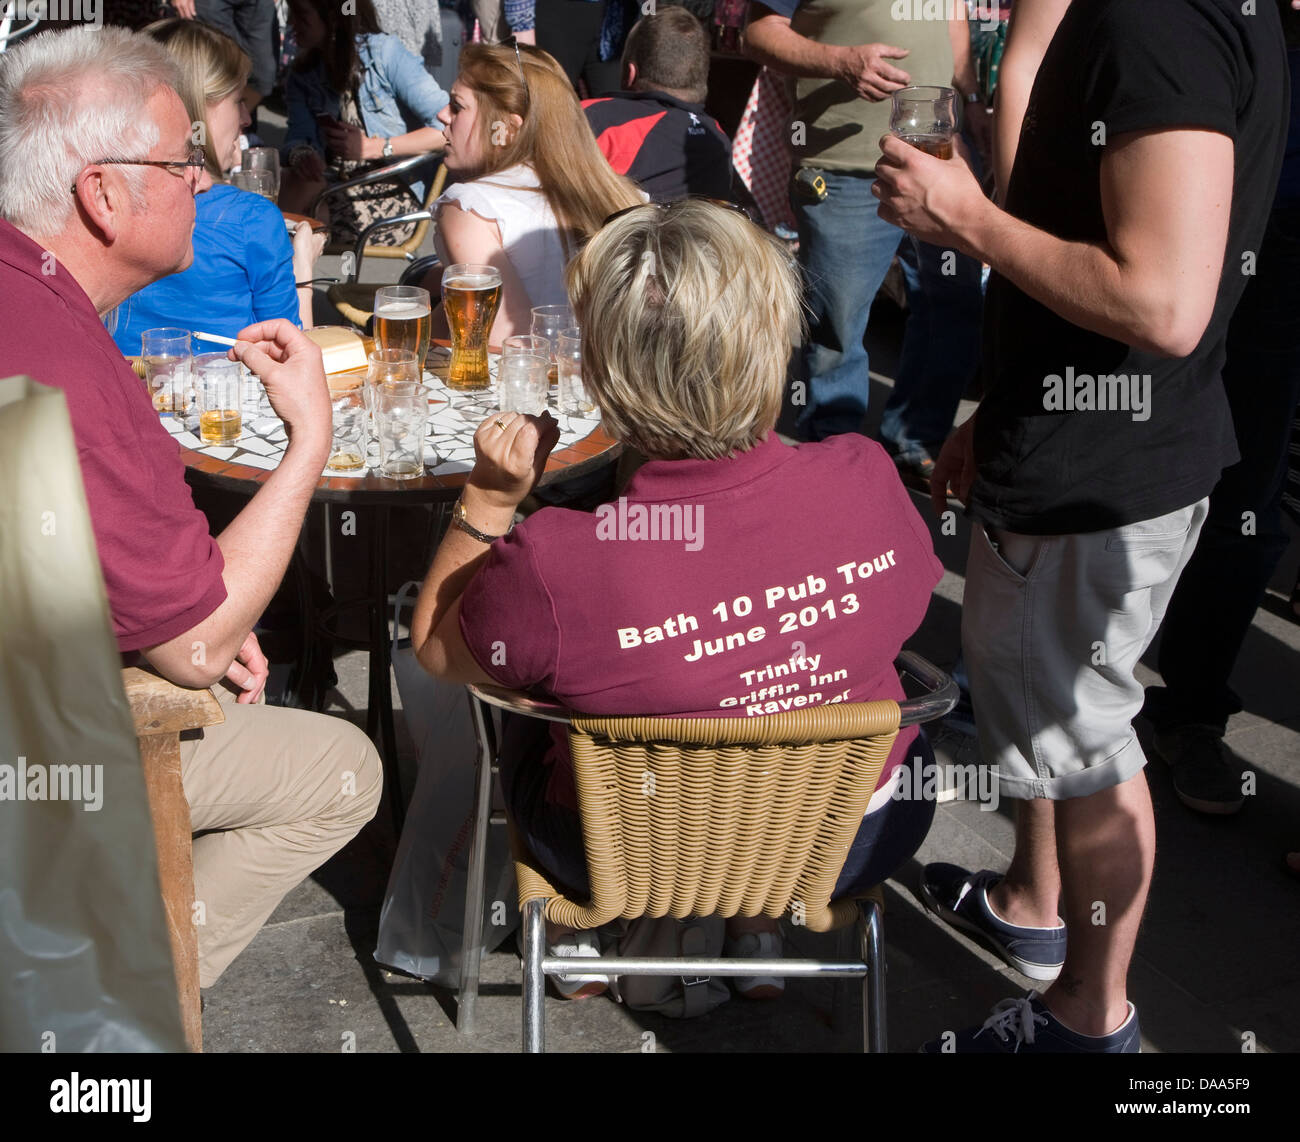 People on a pub crawl wearing t shirts outside the Couer de Lion pub in central Bath, Somerset, England - Stock Image